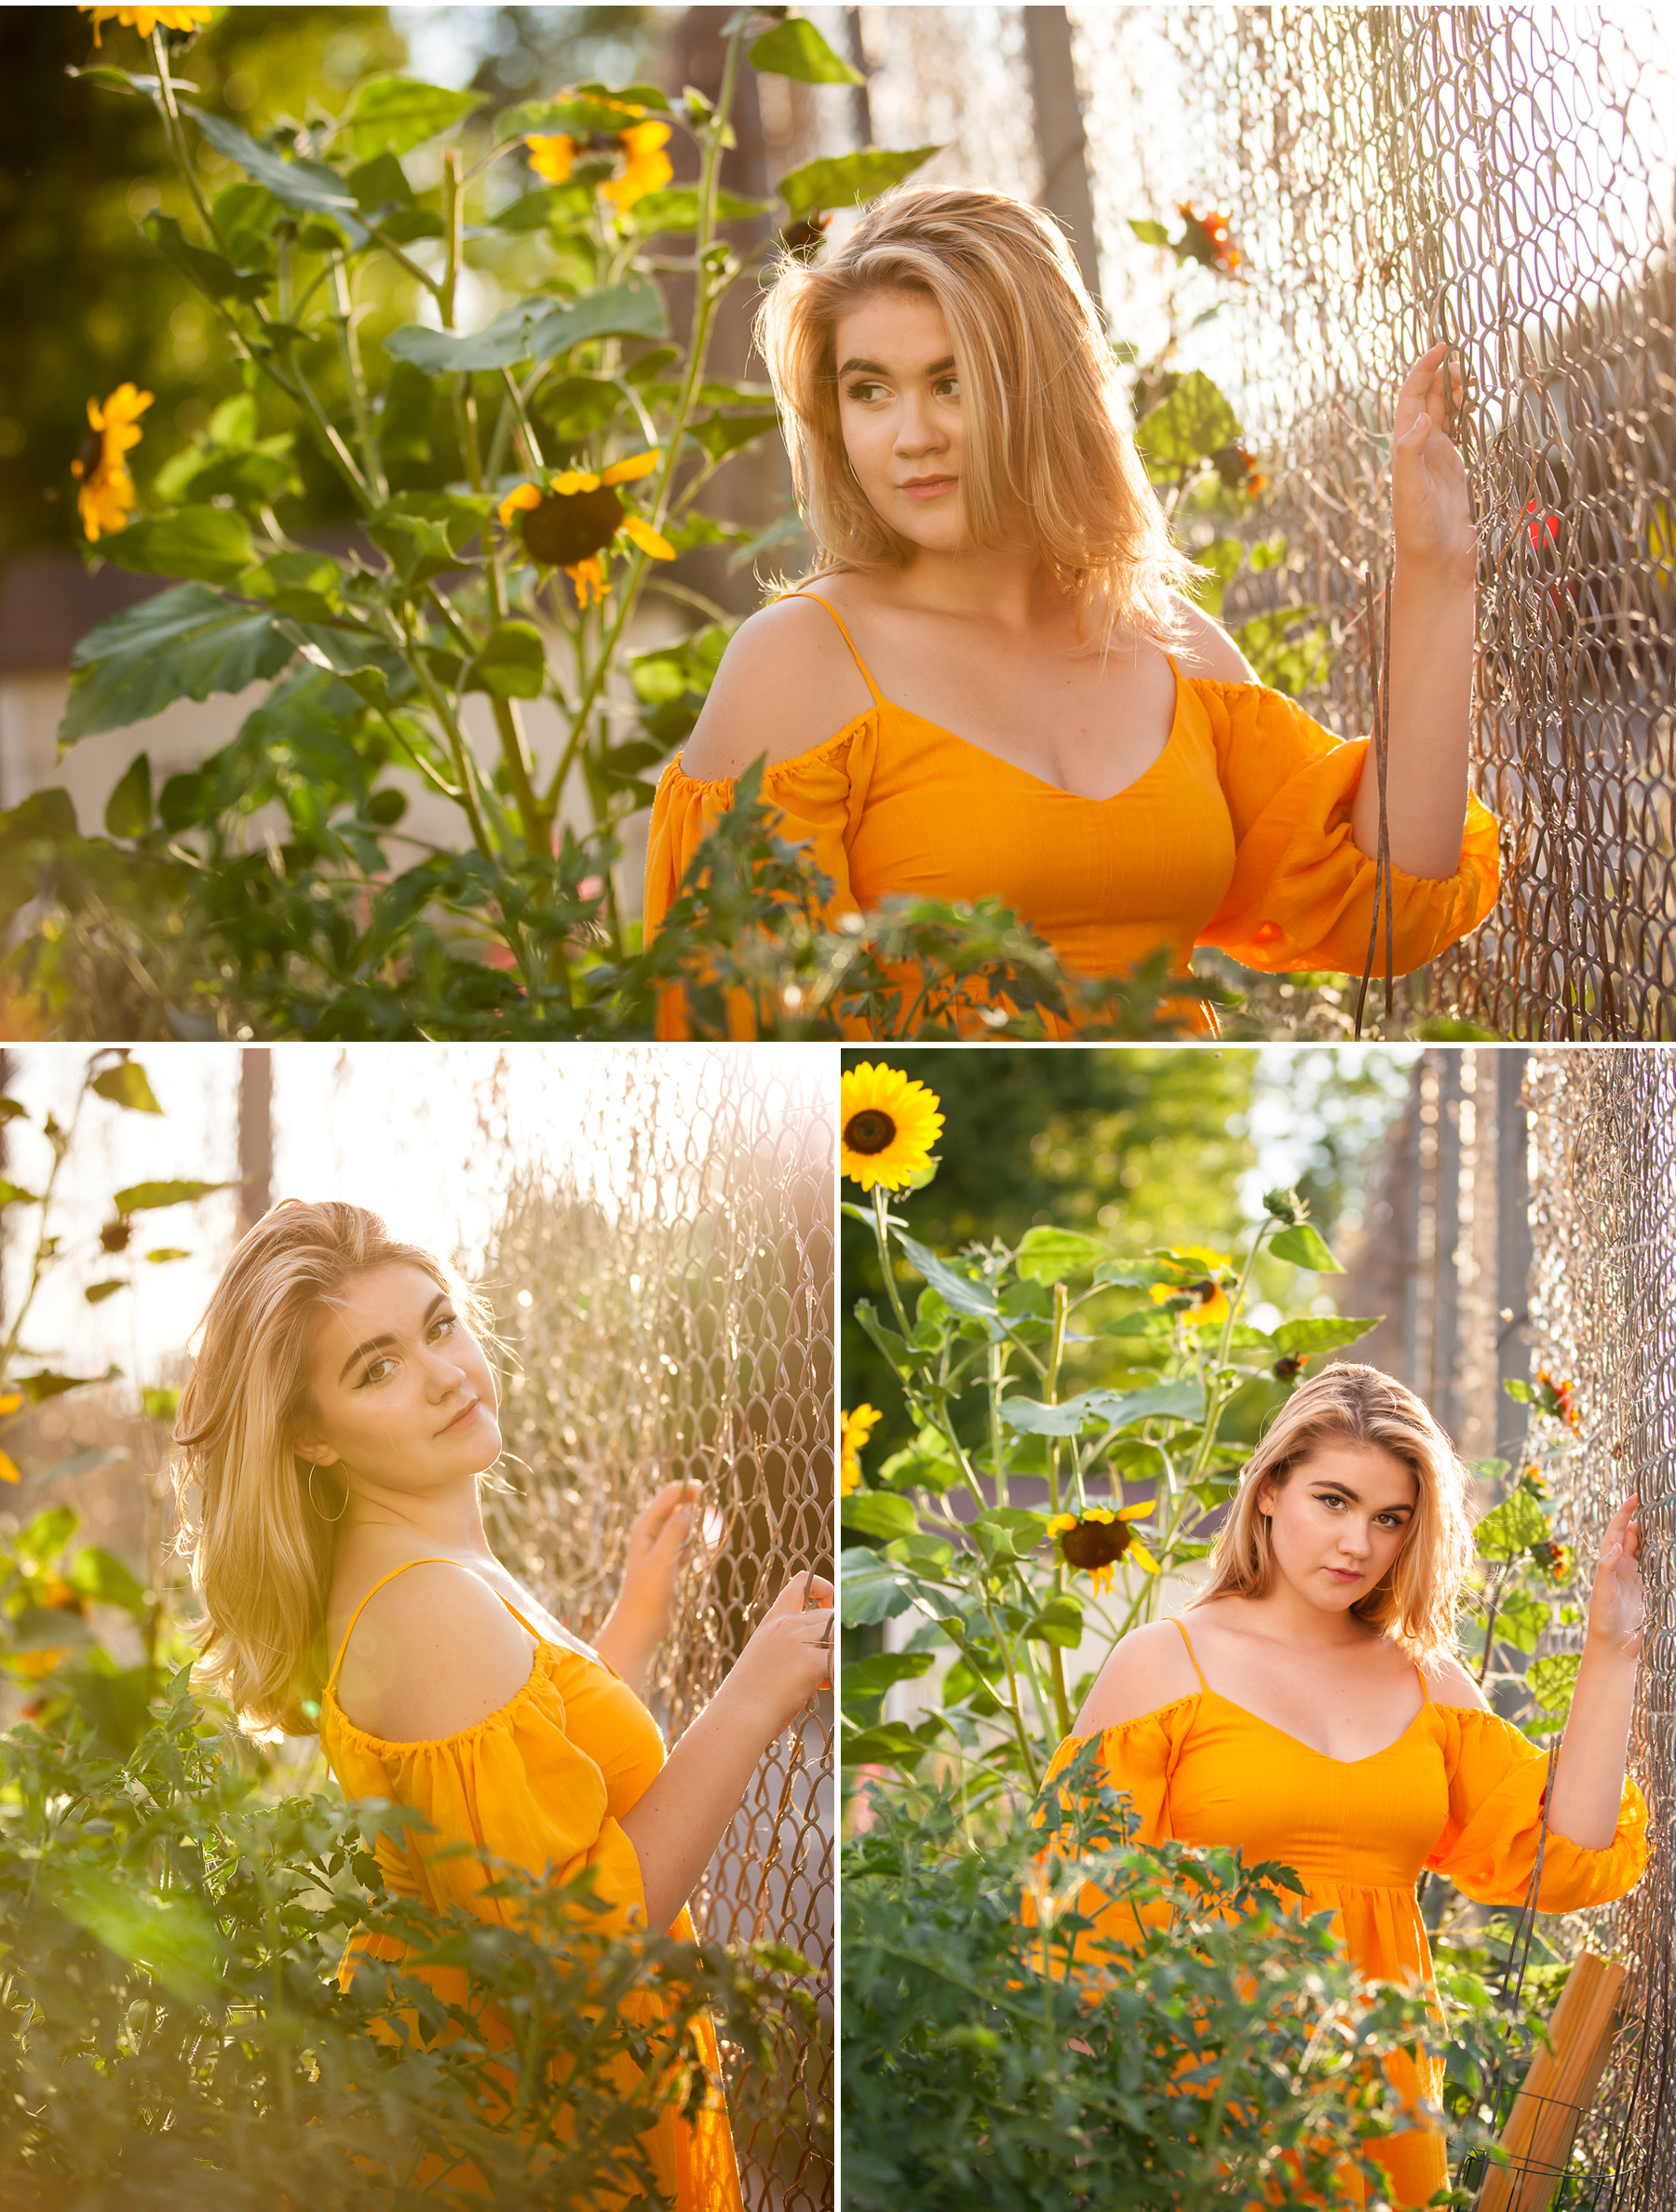 Sunlight and sunflower filled Senior Portraits in summer garden with Denver photographer Jennifer Koskinen, Merritt Portrait Studio